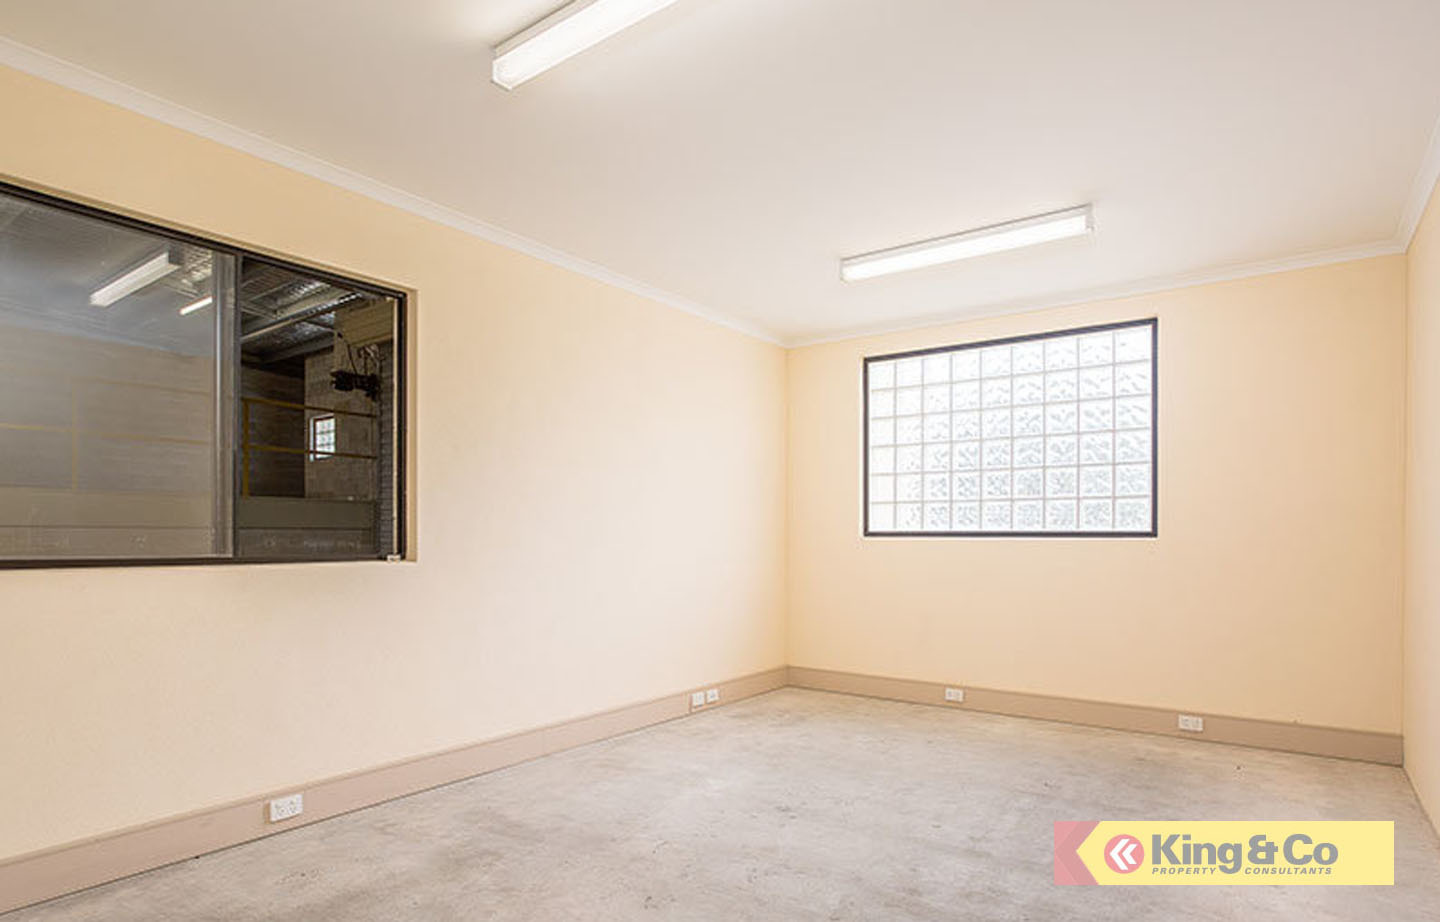 SOLID OFFICE/WAREHOUSE OFF GYMPIE ROAD!